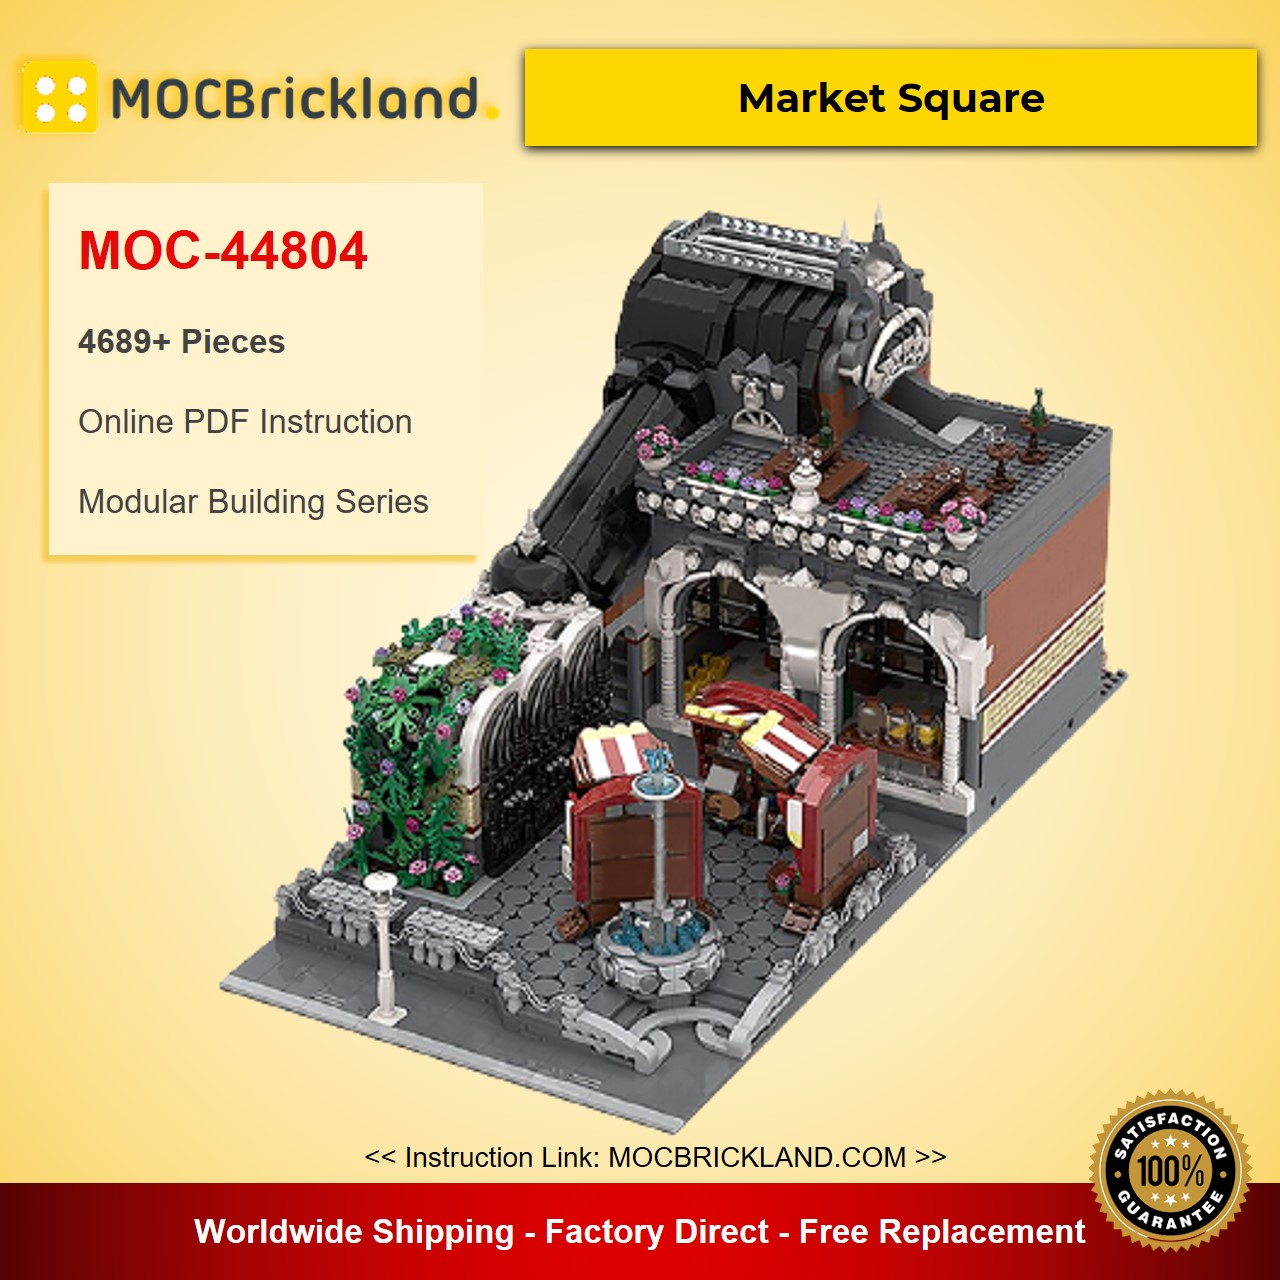 Market Square MOC-44804 Modular Building Designed By Black-Mantled Builder With 4689 Pieces